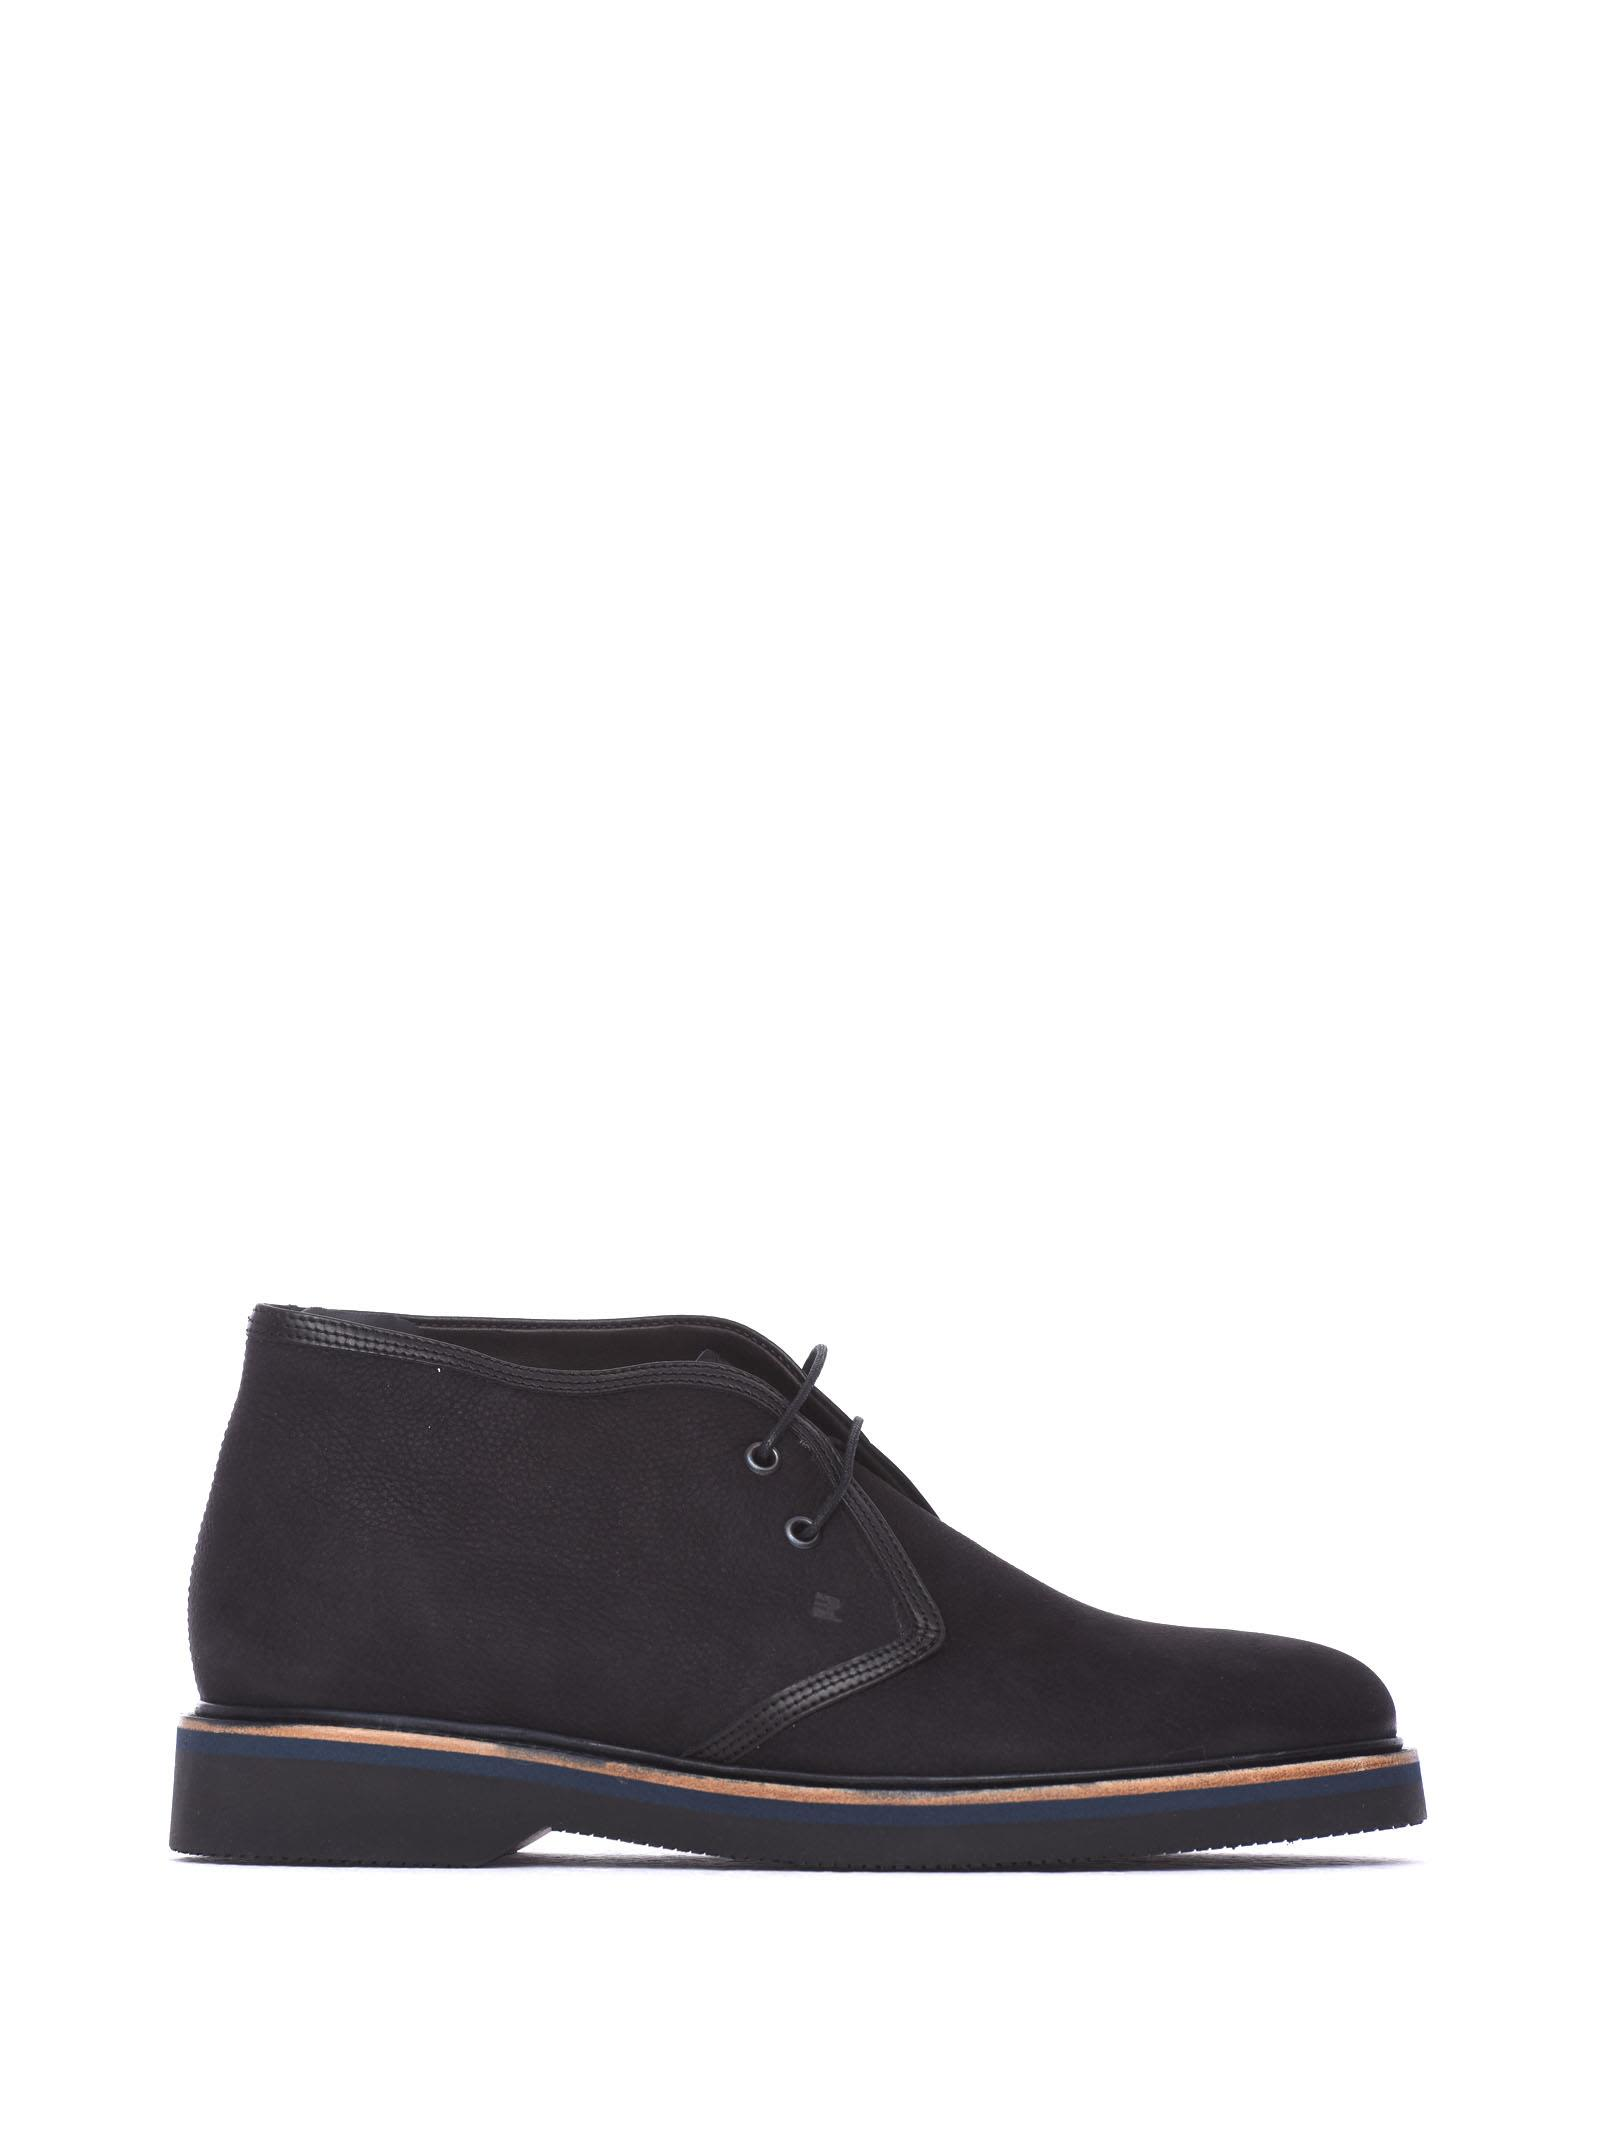 FRATELLI ROSSETTI ONE Desert Boots In Black Nabuk Leather in Nero